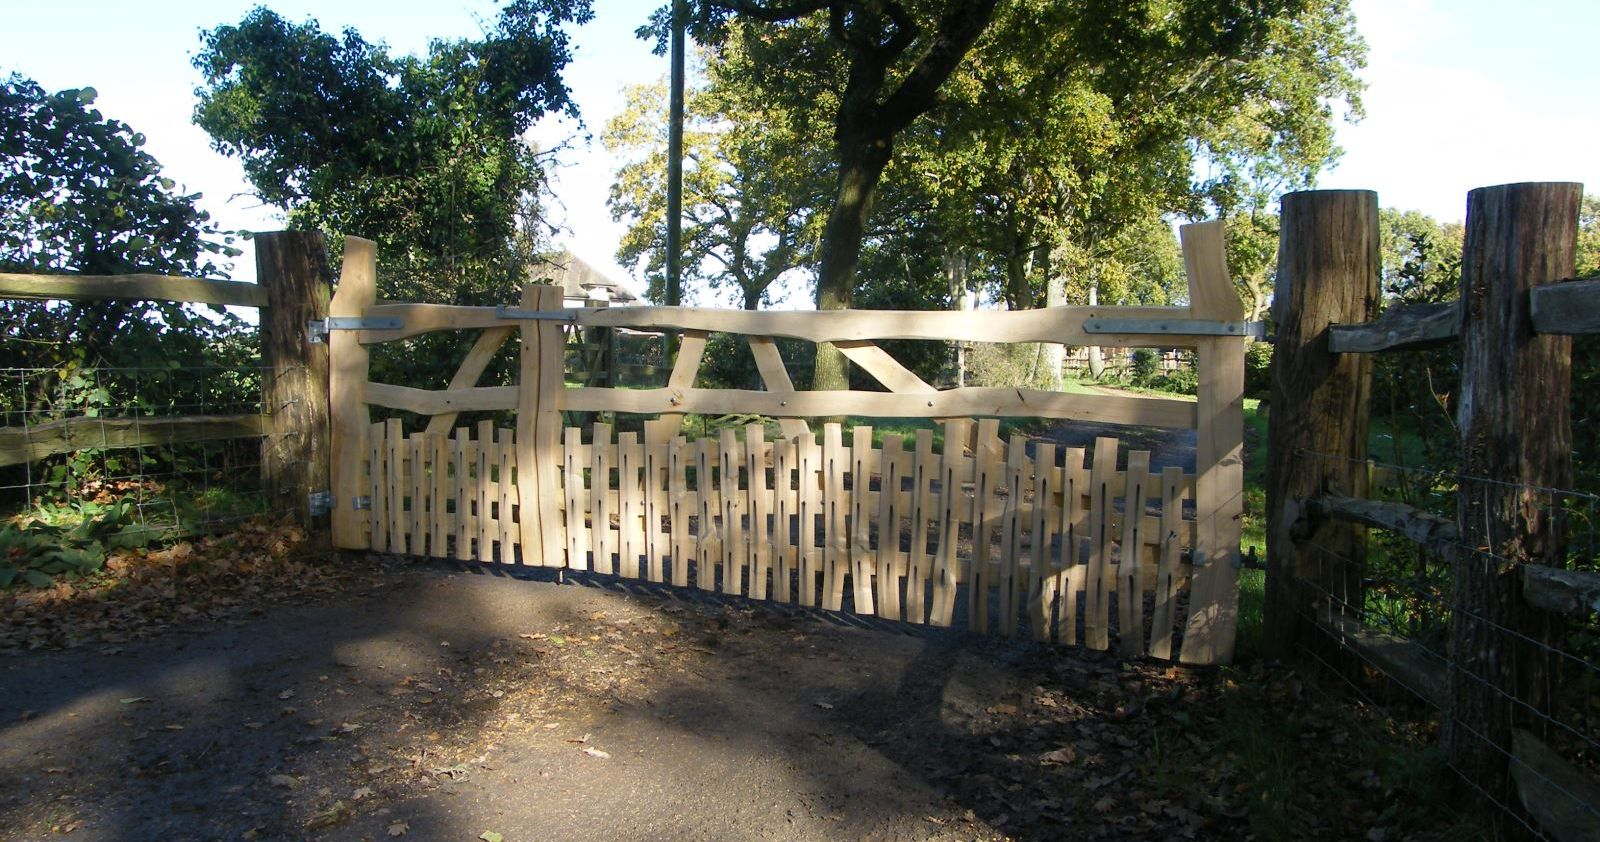 Sweet chestnut entrance gate and side gate with short pales